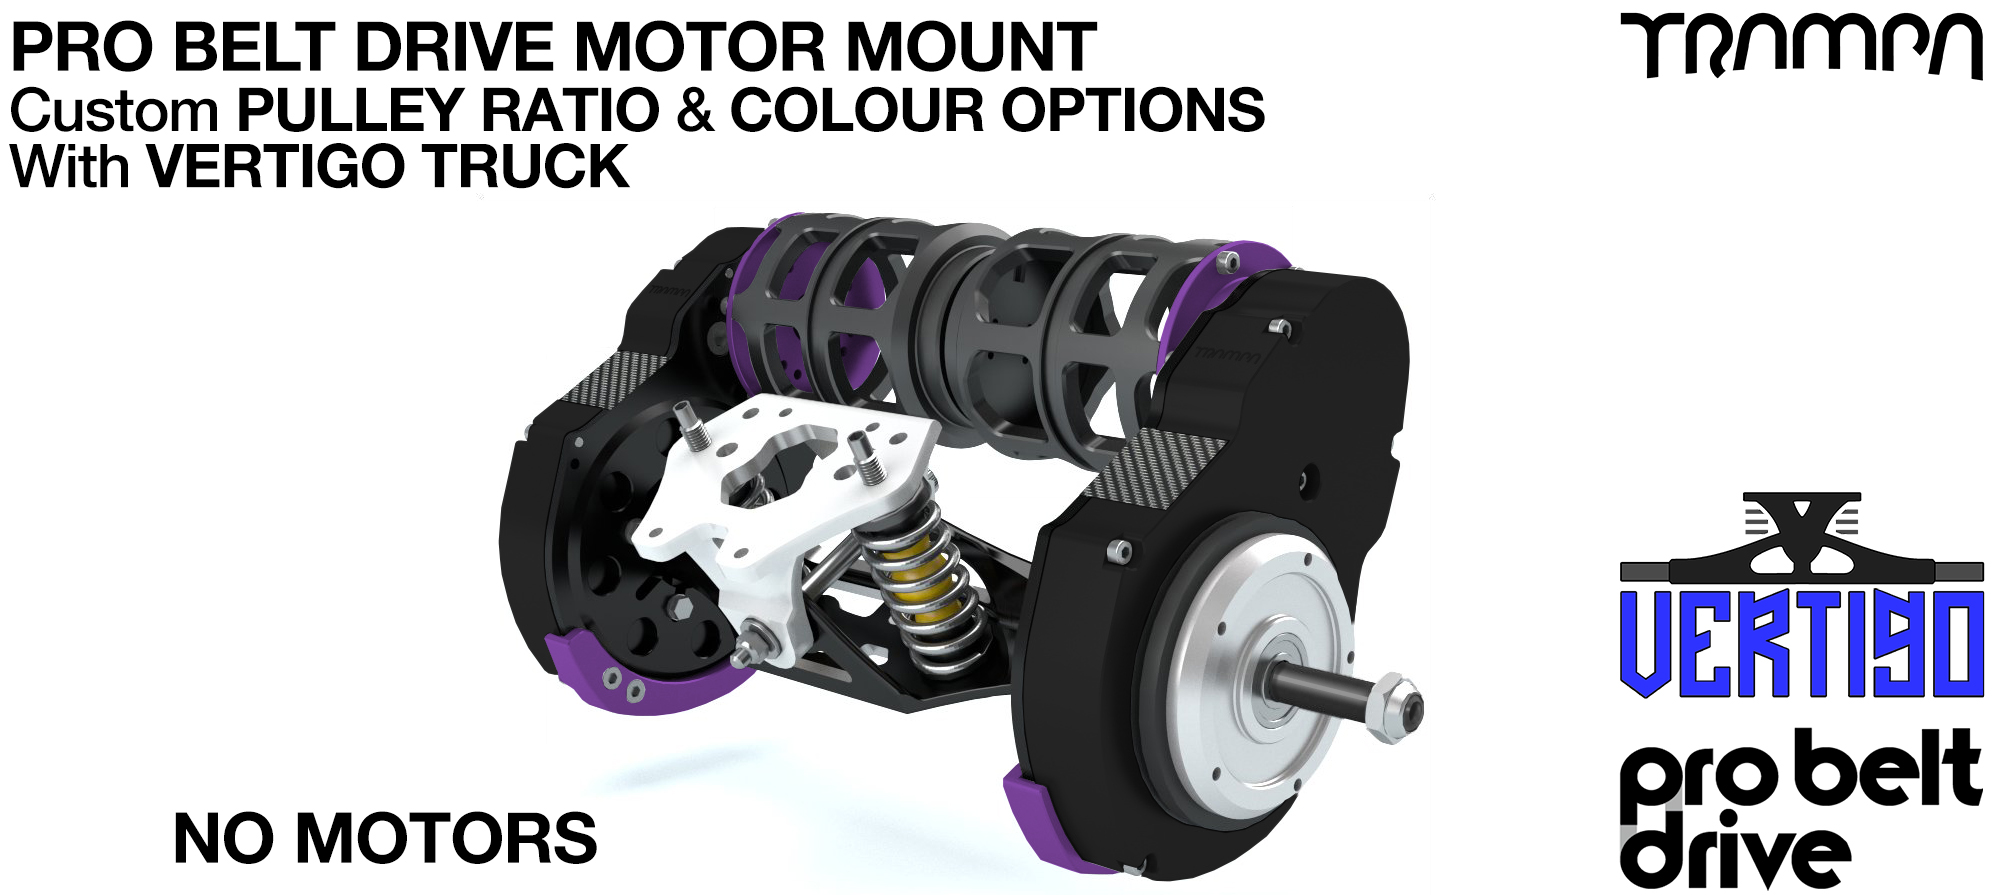 Mountainboard PRO Belt Drive TWIN Motor Mounts & Precision VERTIGO Truck